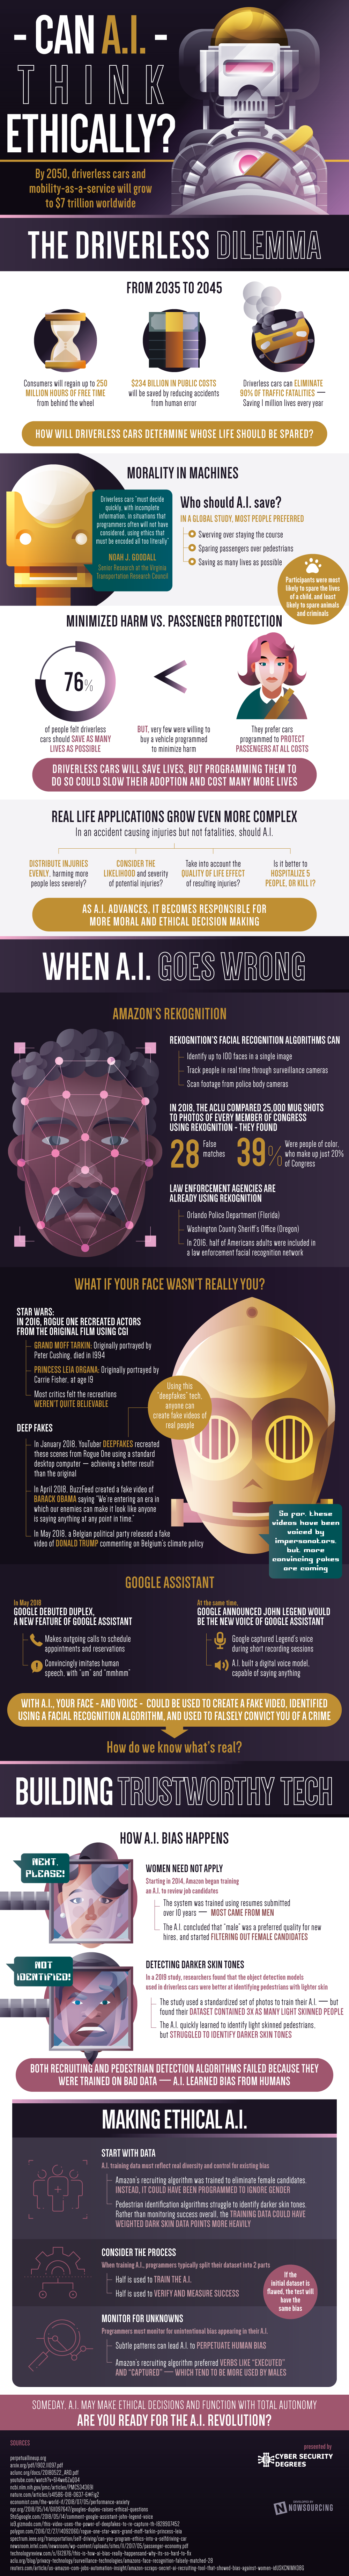 CAN AI THINK ETHICALLY? #INFOGRAPHIC